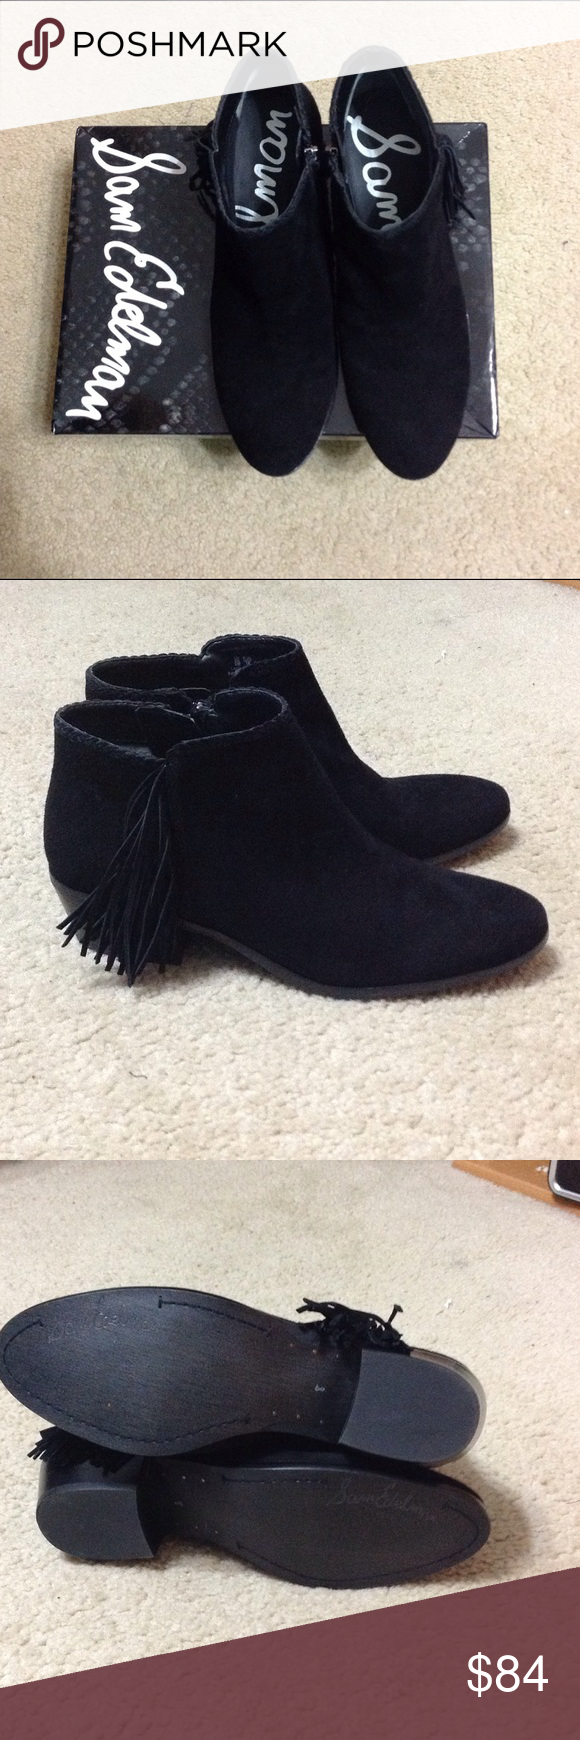 """Sam Edelman Paige Fringed Bootie NIB Paige Fringed Ankle Bootie.  Perfect Christmas Gift! Black Sueded Leather Upper, inside zipper, braided detailing along top line.  1.75"""" heel.  Brand New in Box! Sam Edelman Shoes Ankle Boots & Booties"""